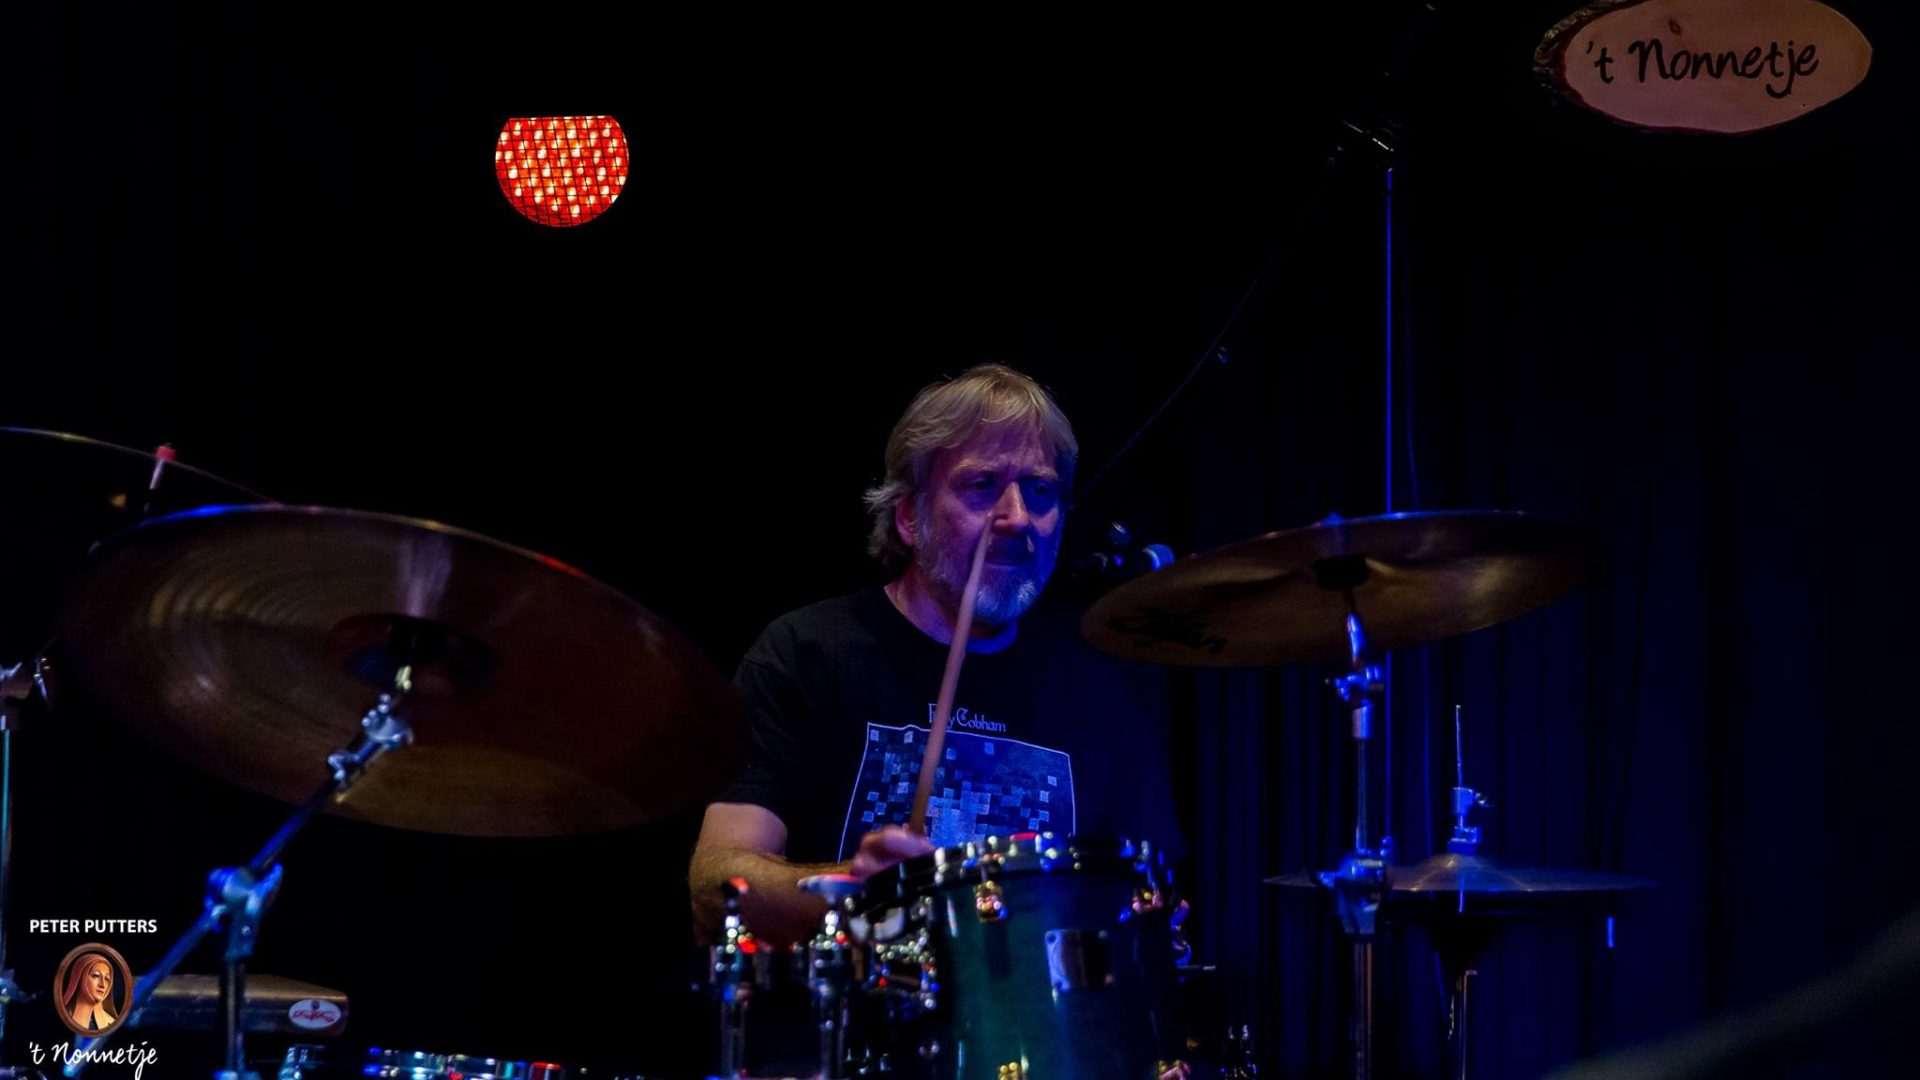 Permalink to: Pieter Voogt – Drums, Percussion, Vocals, Composer, Producer